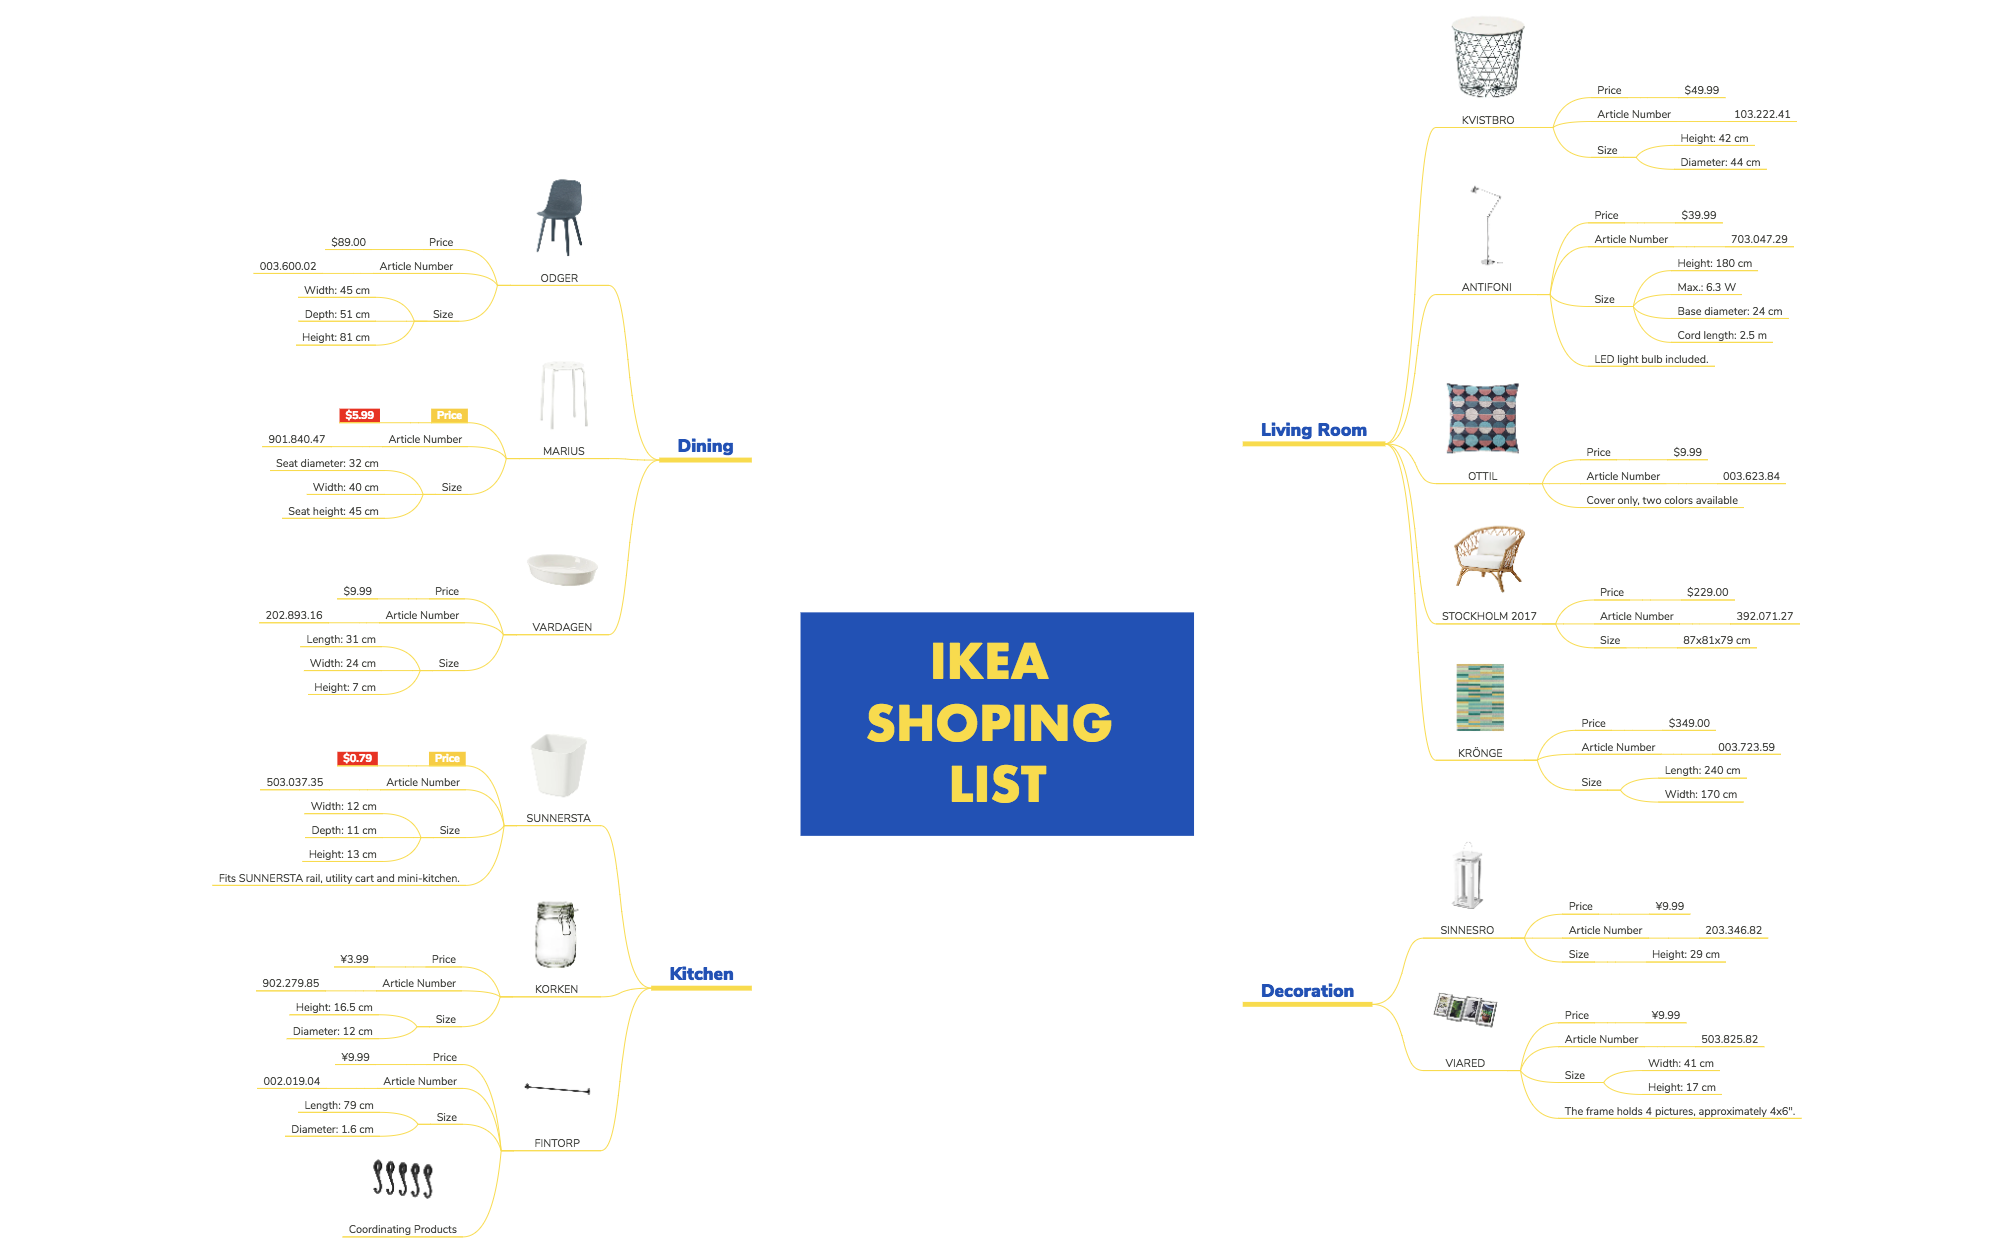 IKEA SHOPING LIST